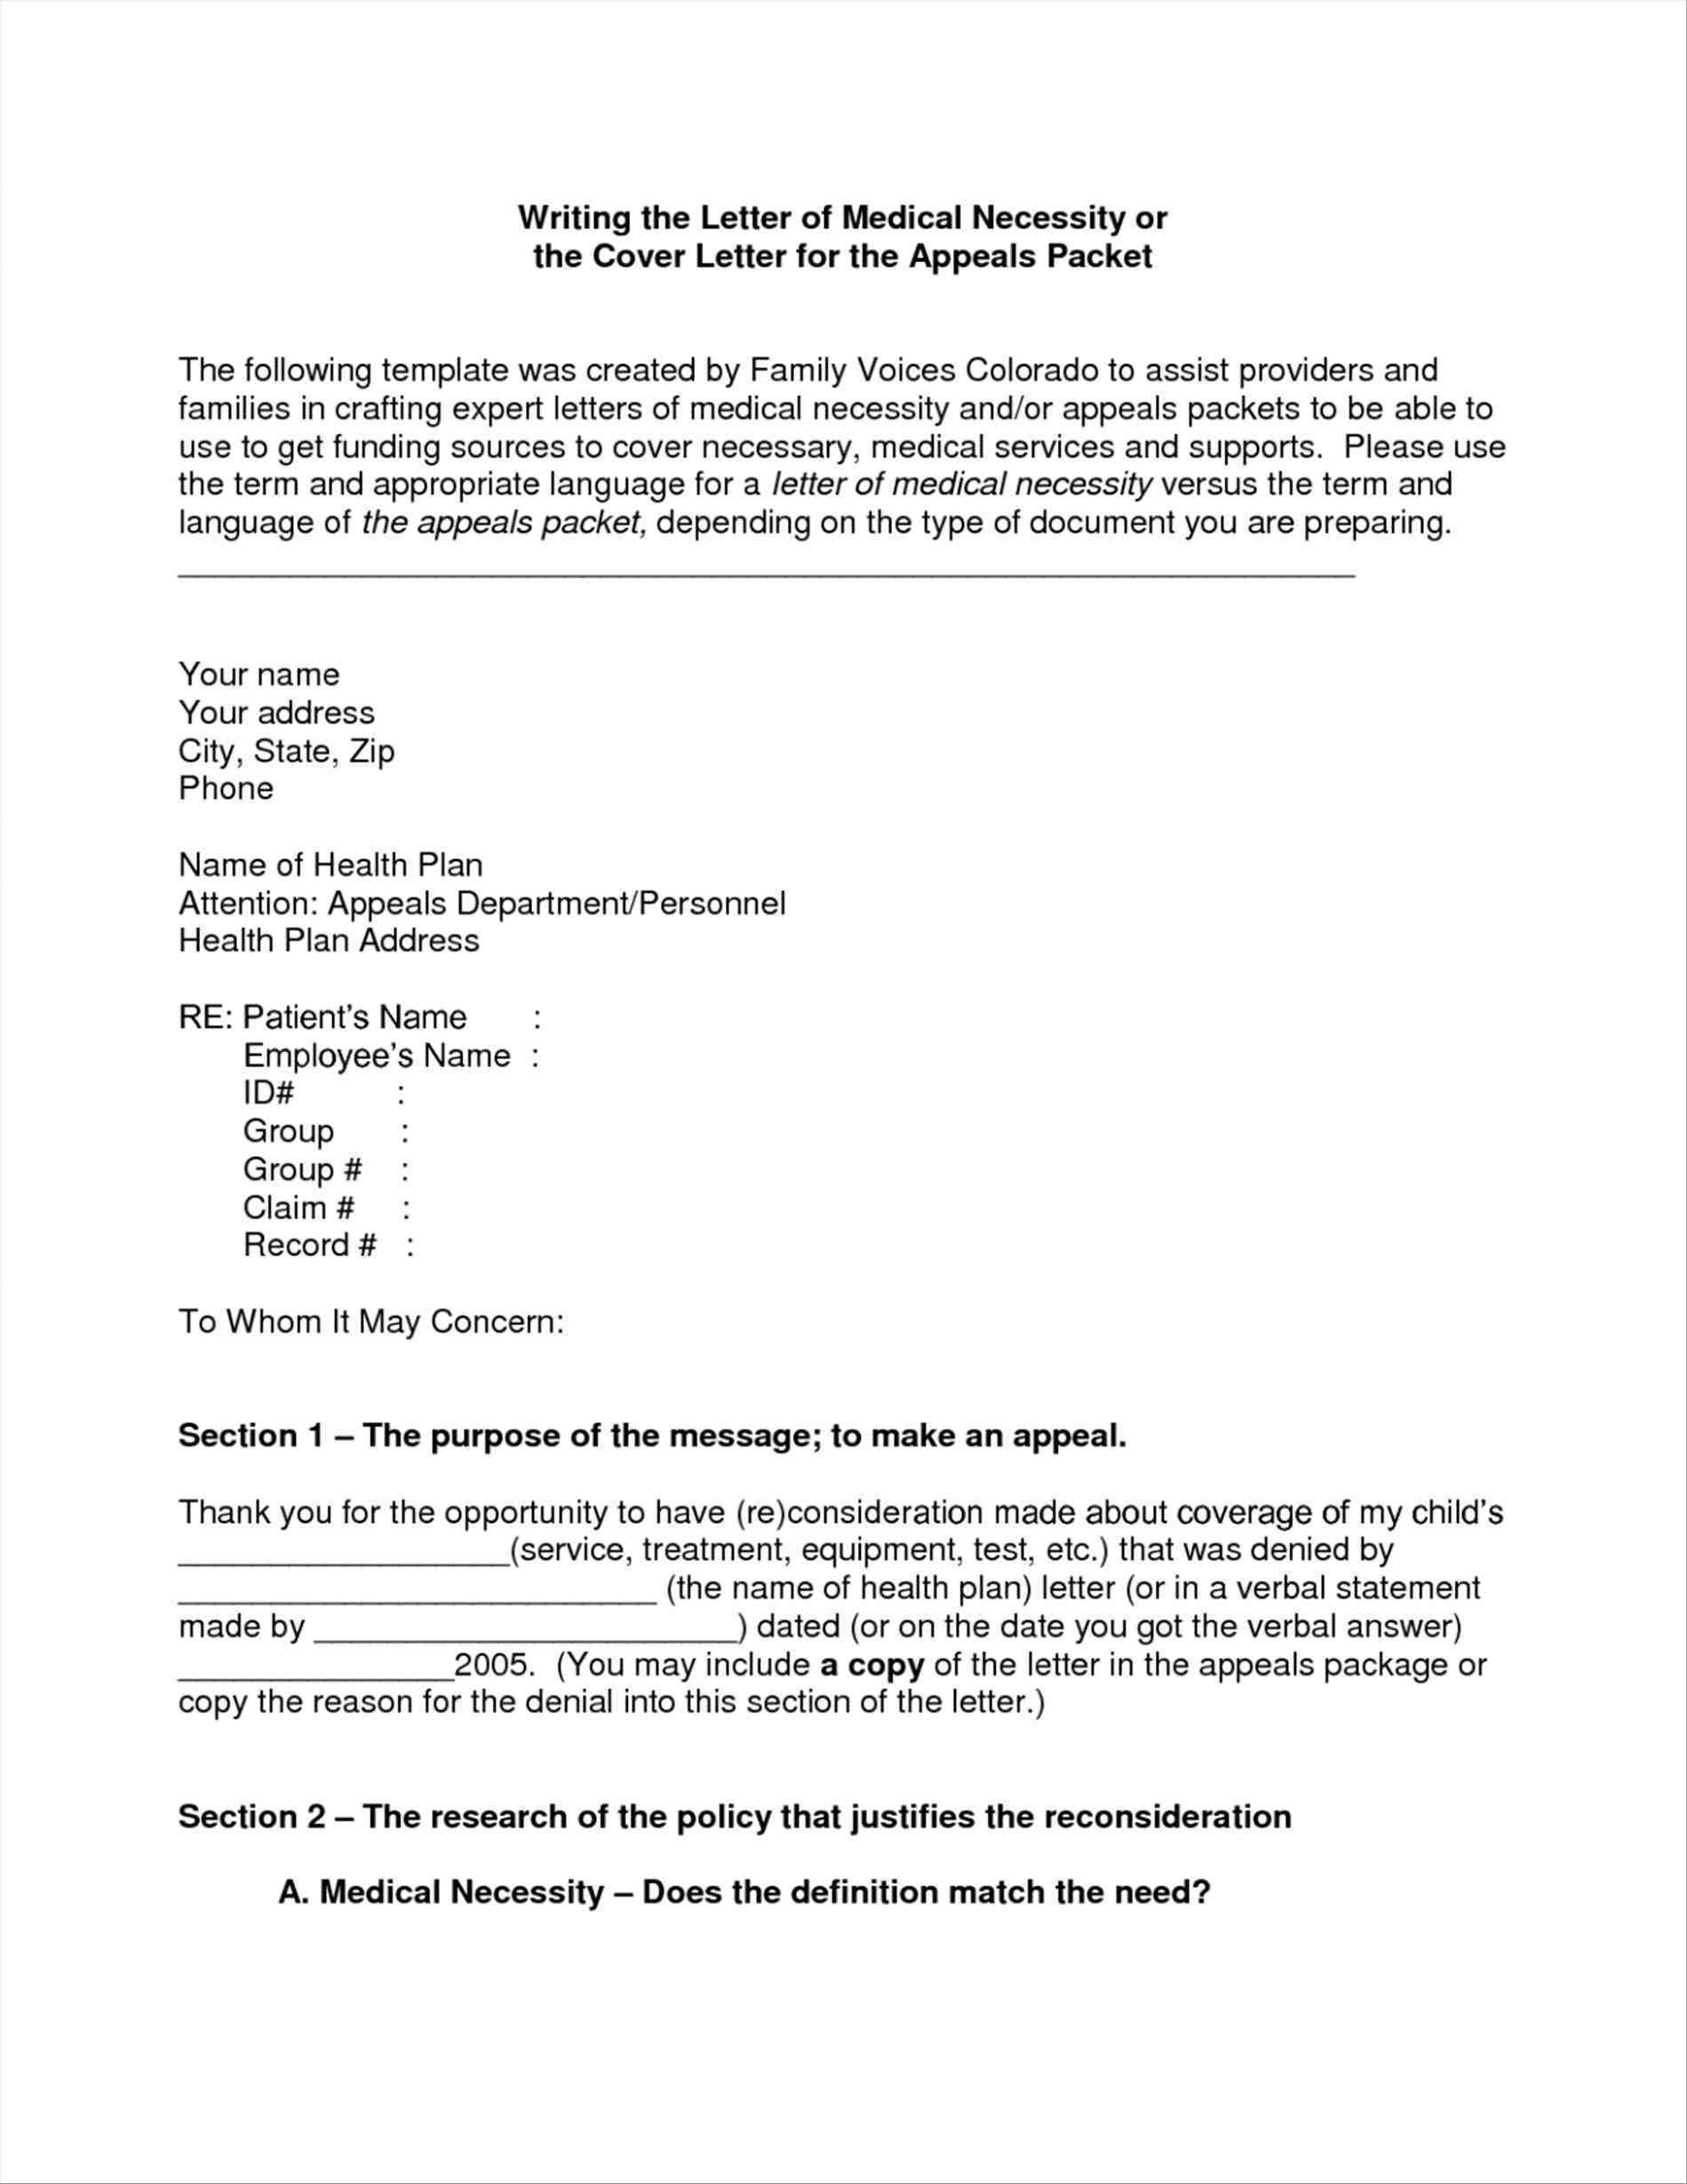 Medical Necessity Appeal Letter Template Samples | Letter Template